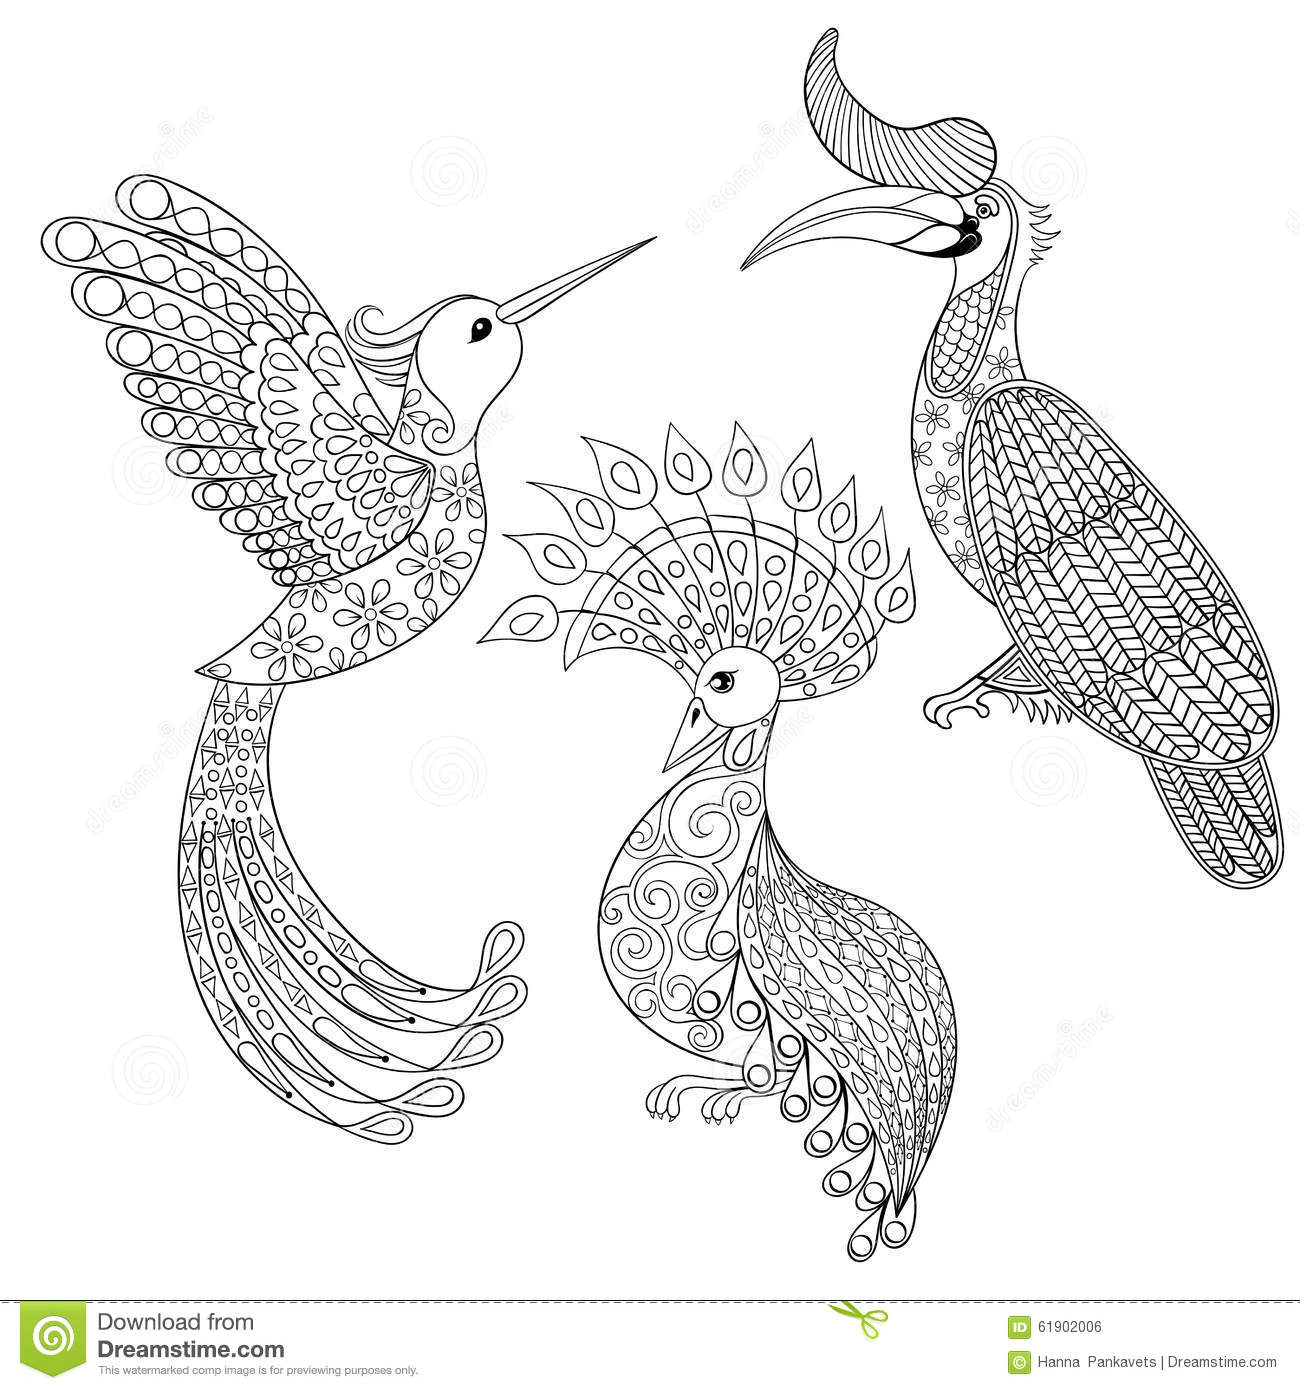 Coloring Page With Bird Rhinoceros, Hummingbird And Exotic